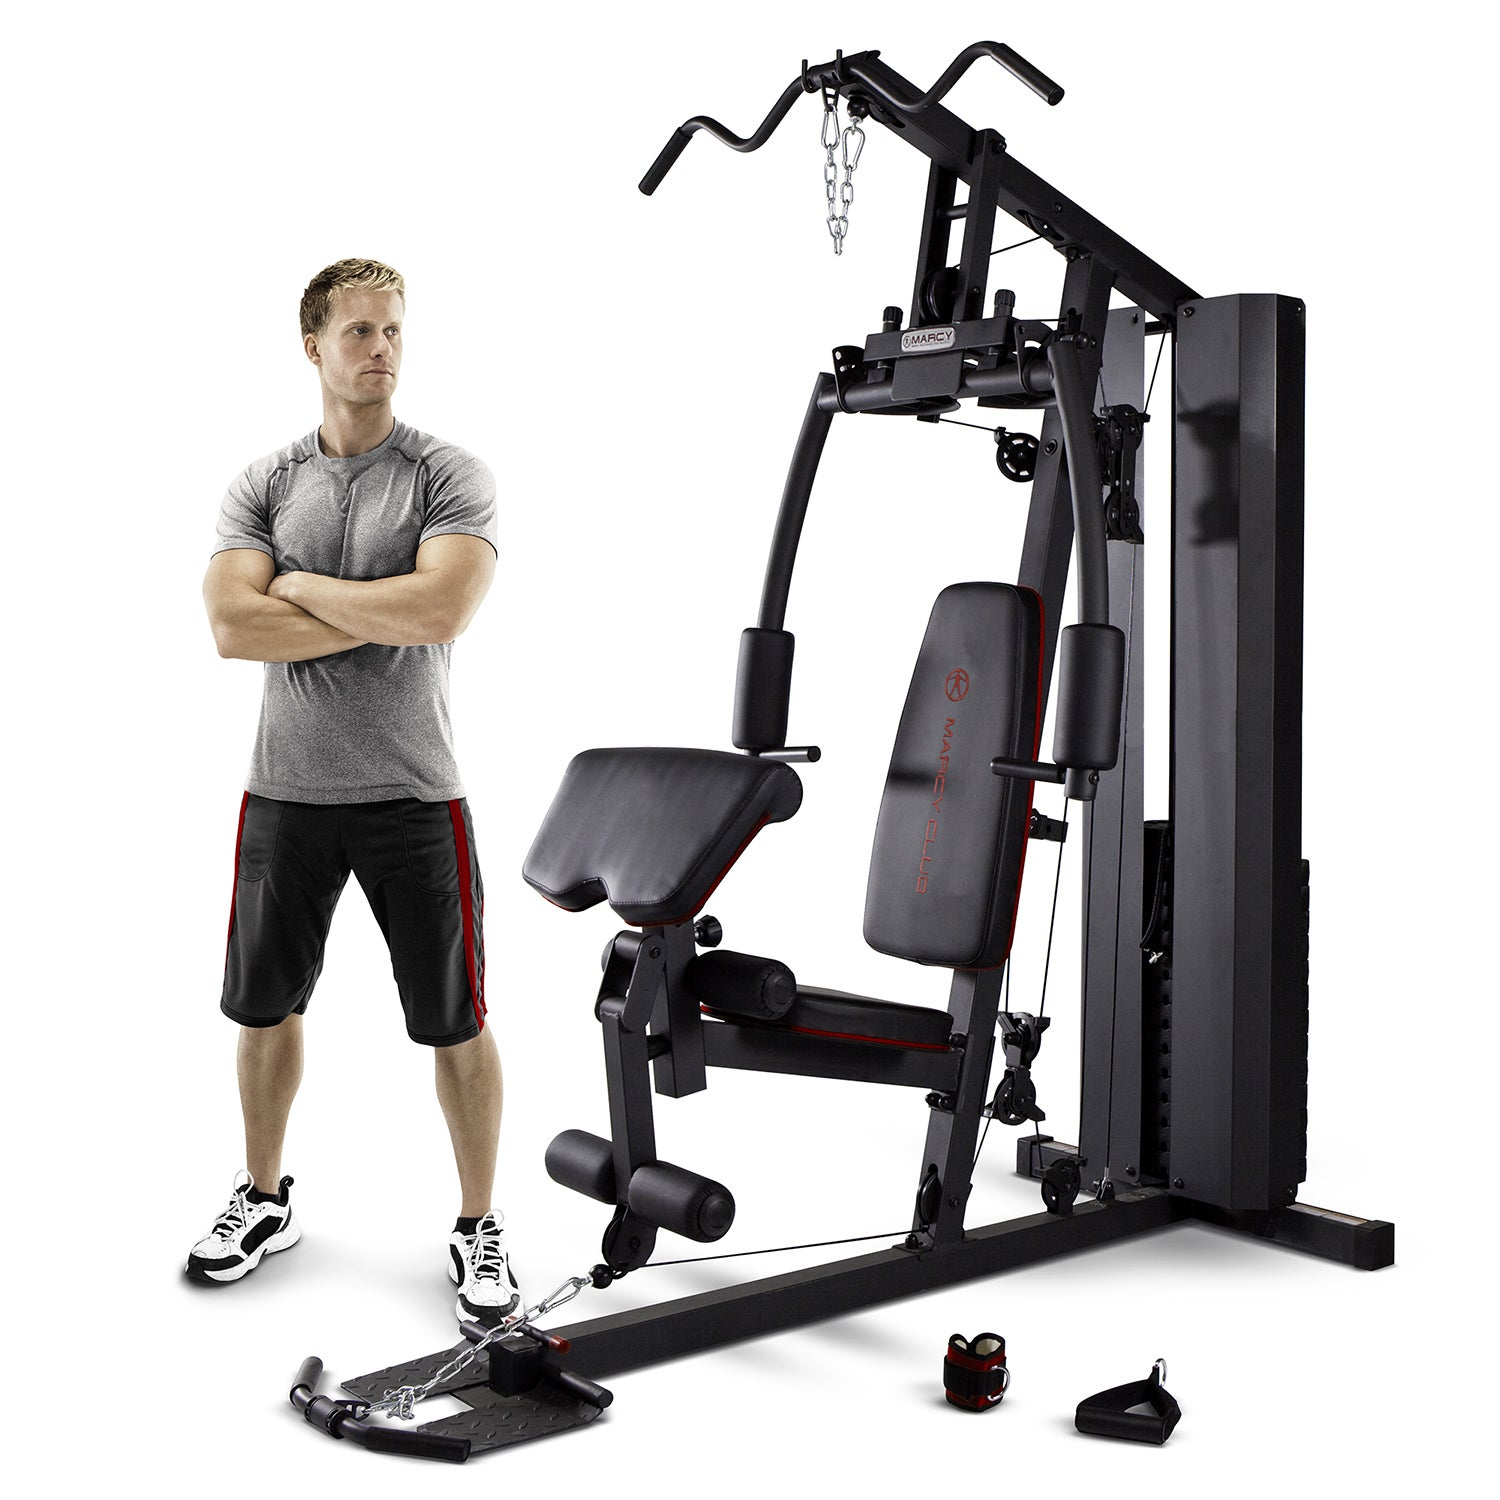 Marcy 200-Pound Stack Home Gym (200 lb Stack Home Gym), S...